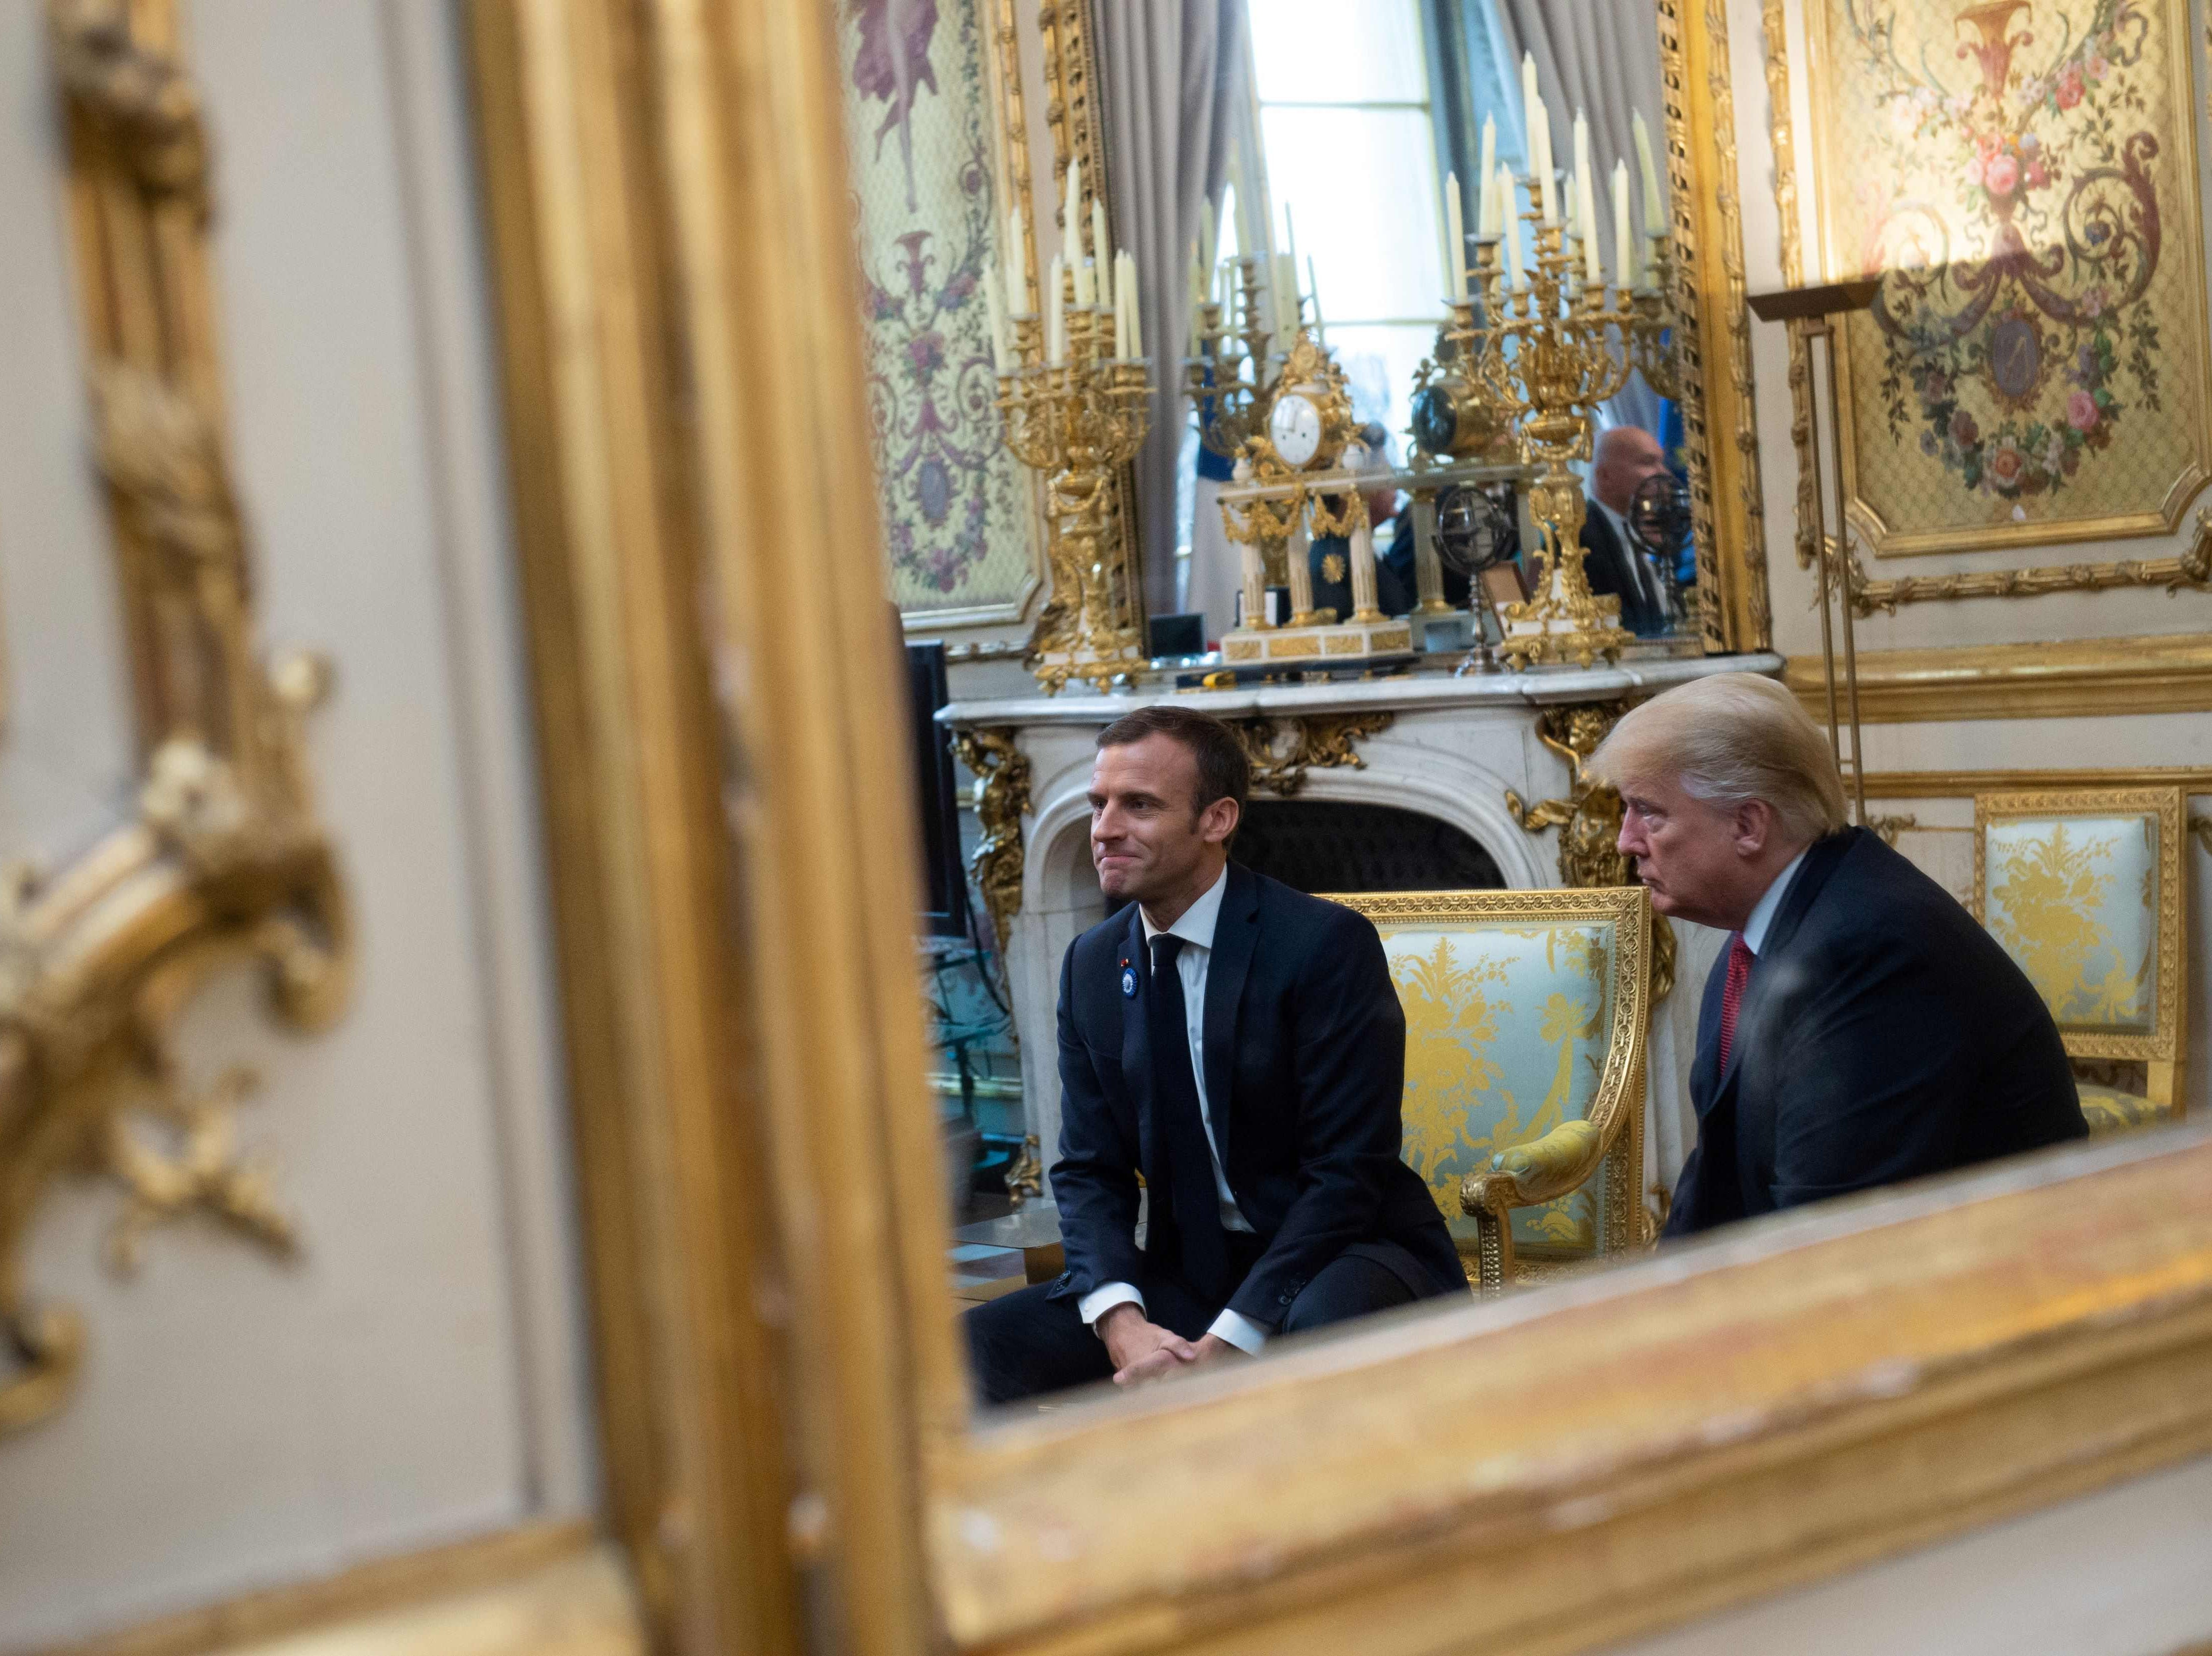 President Donald Trump speaks with French president Emmanuel Macron prior to their meeting at the Elysee Palace in Paris, on Nov. 10, 2018, on the sidelines of commemorations marking the 100th anniversary of the 11 November 1918 armistice, ending World War I.